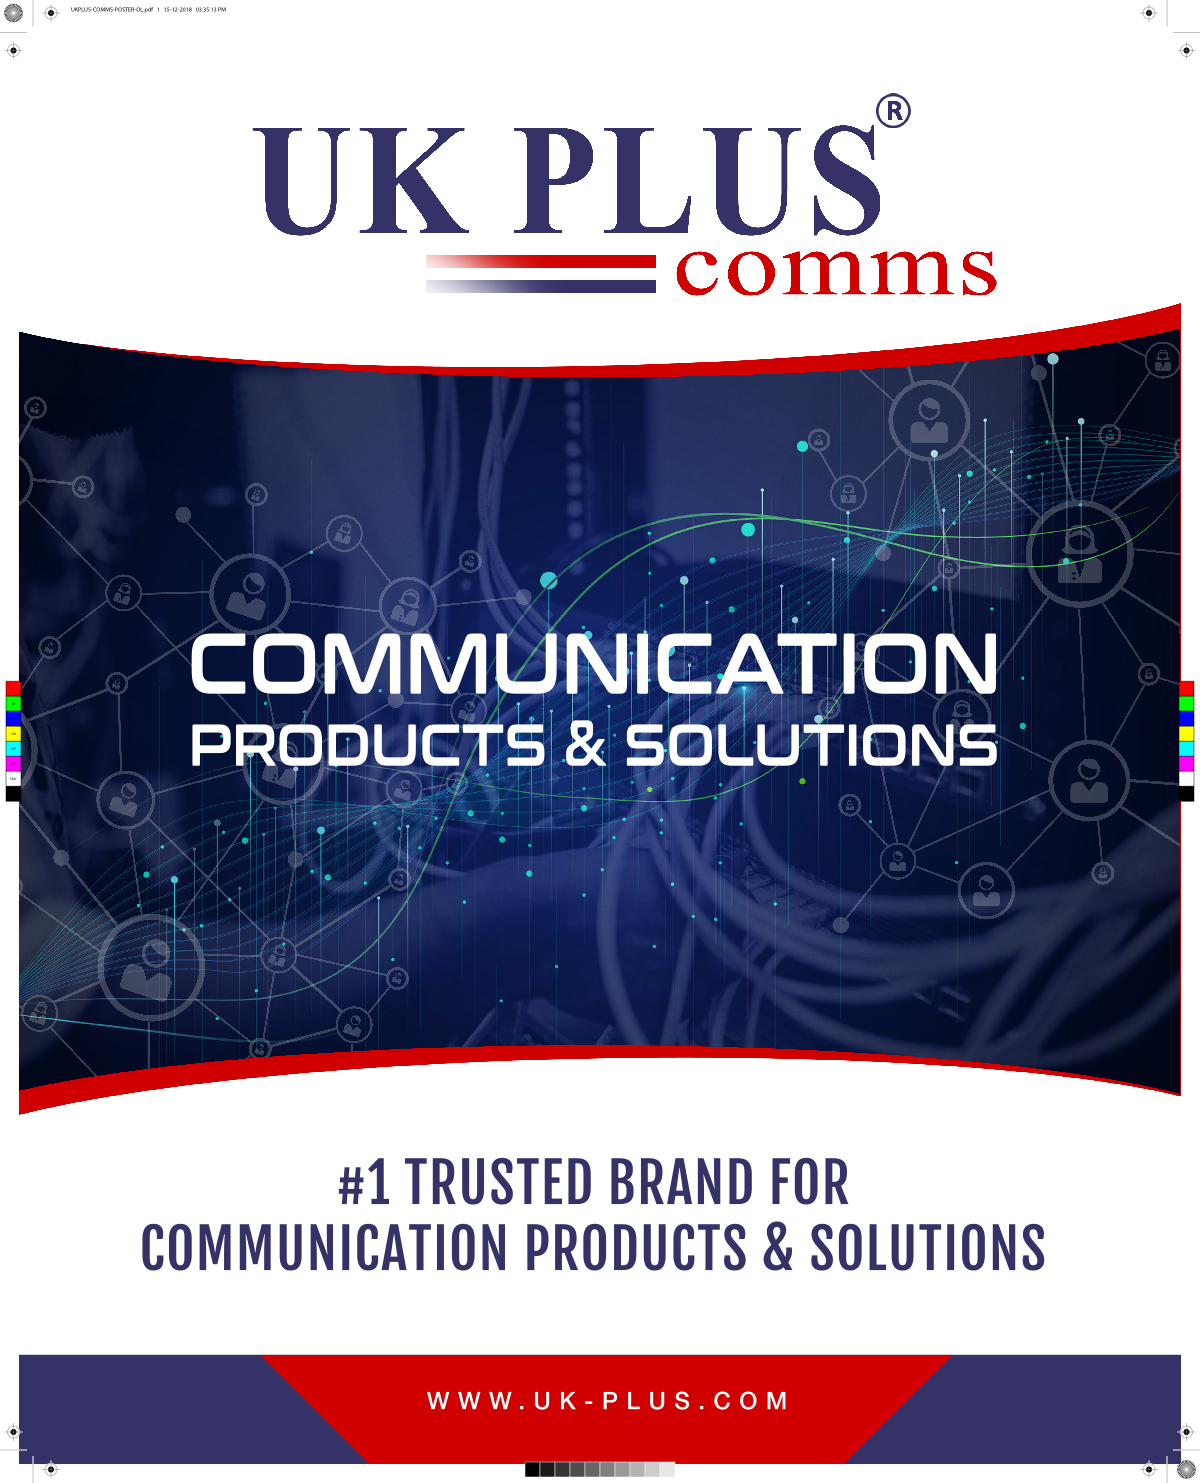 Professional looking Posters for Two extended brands of UKPLUS